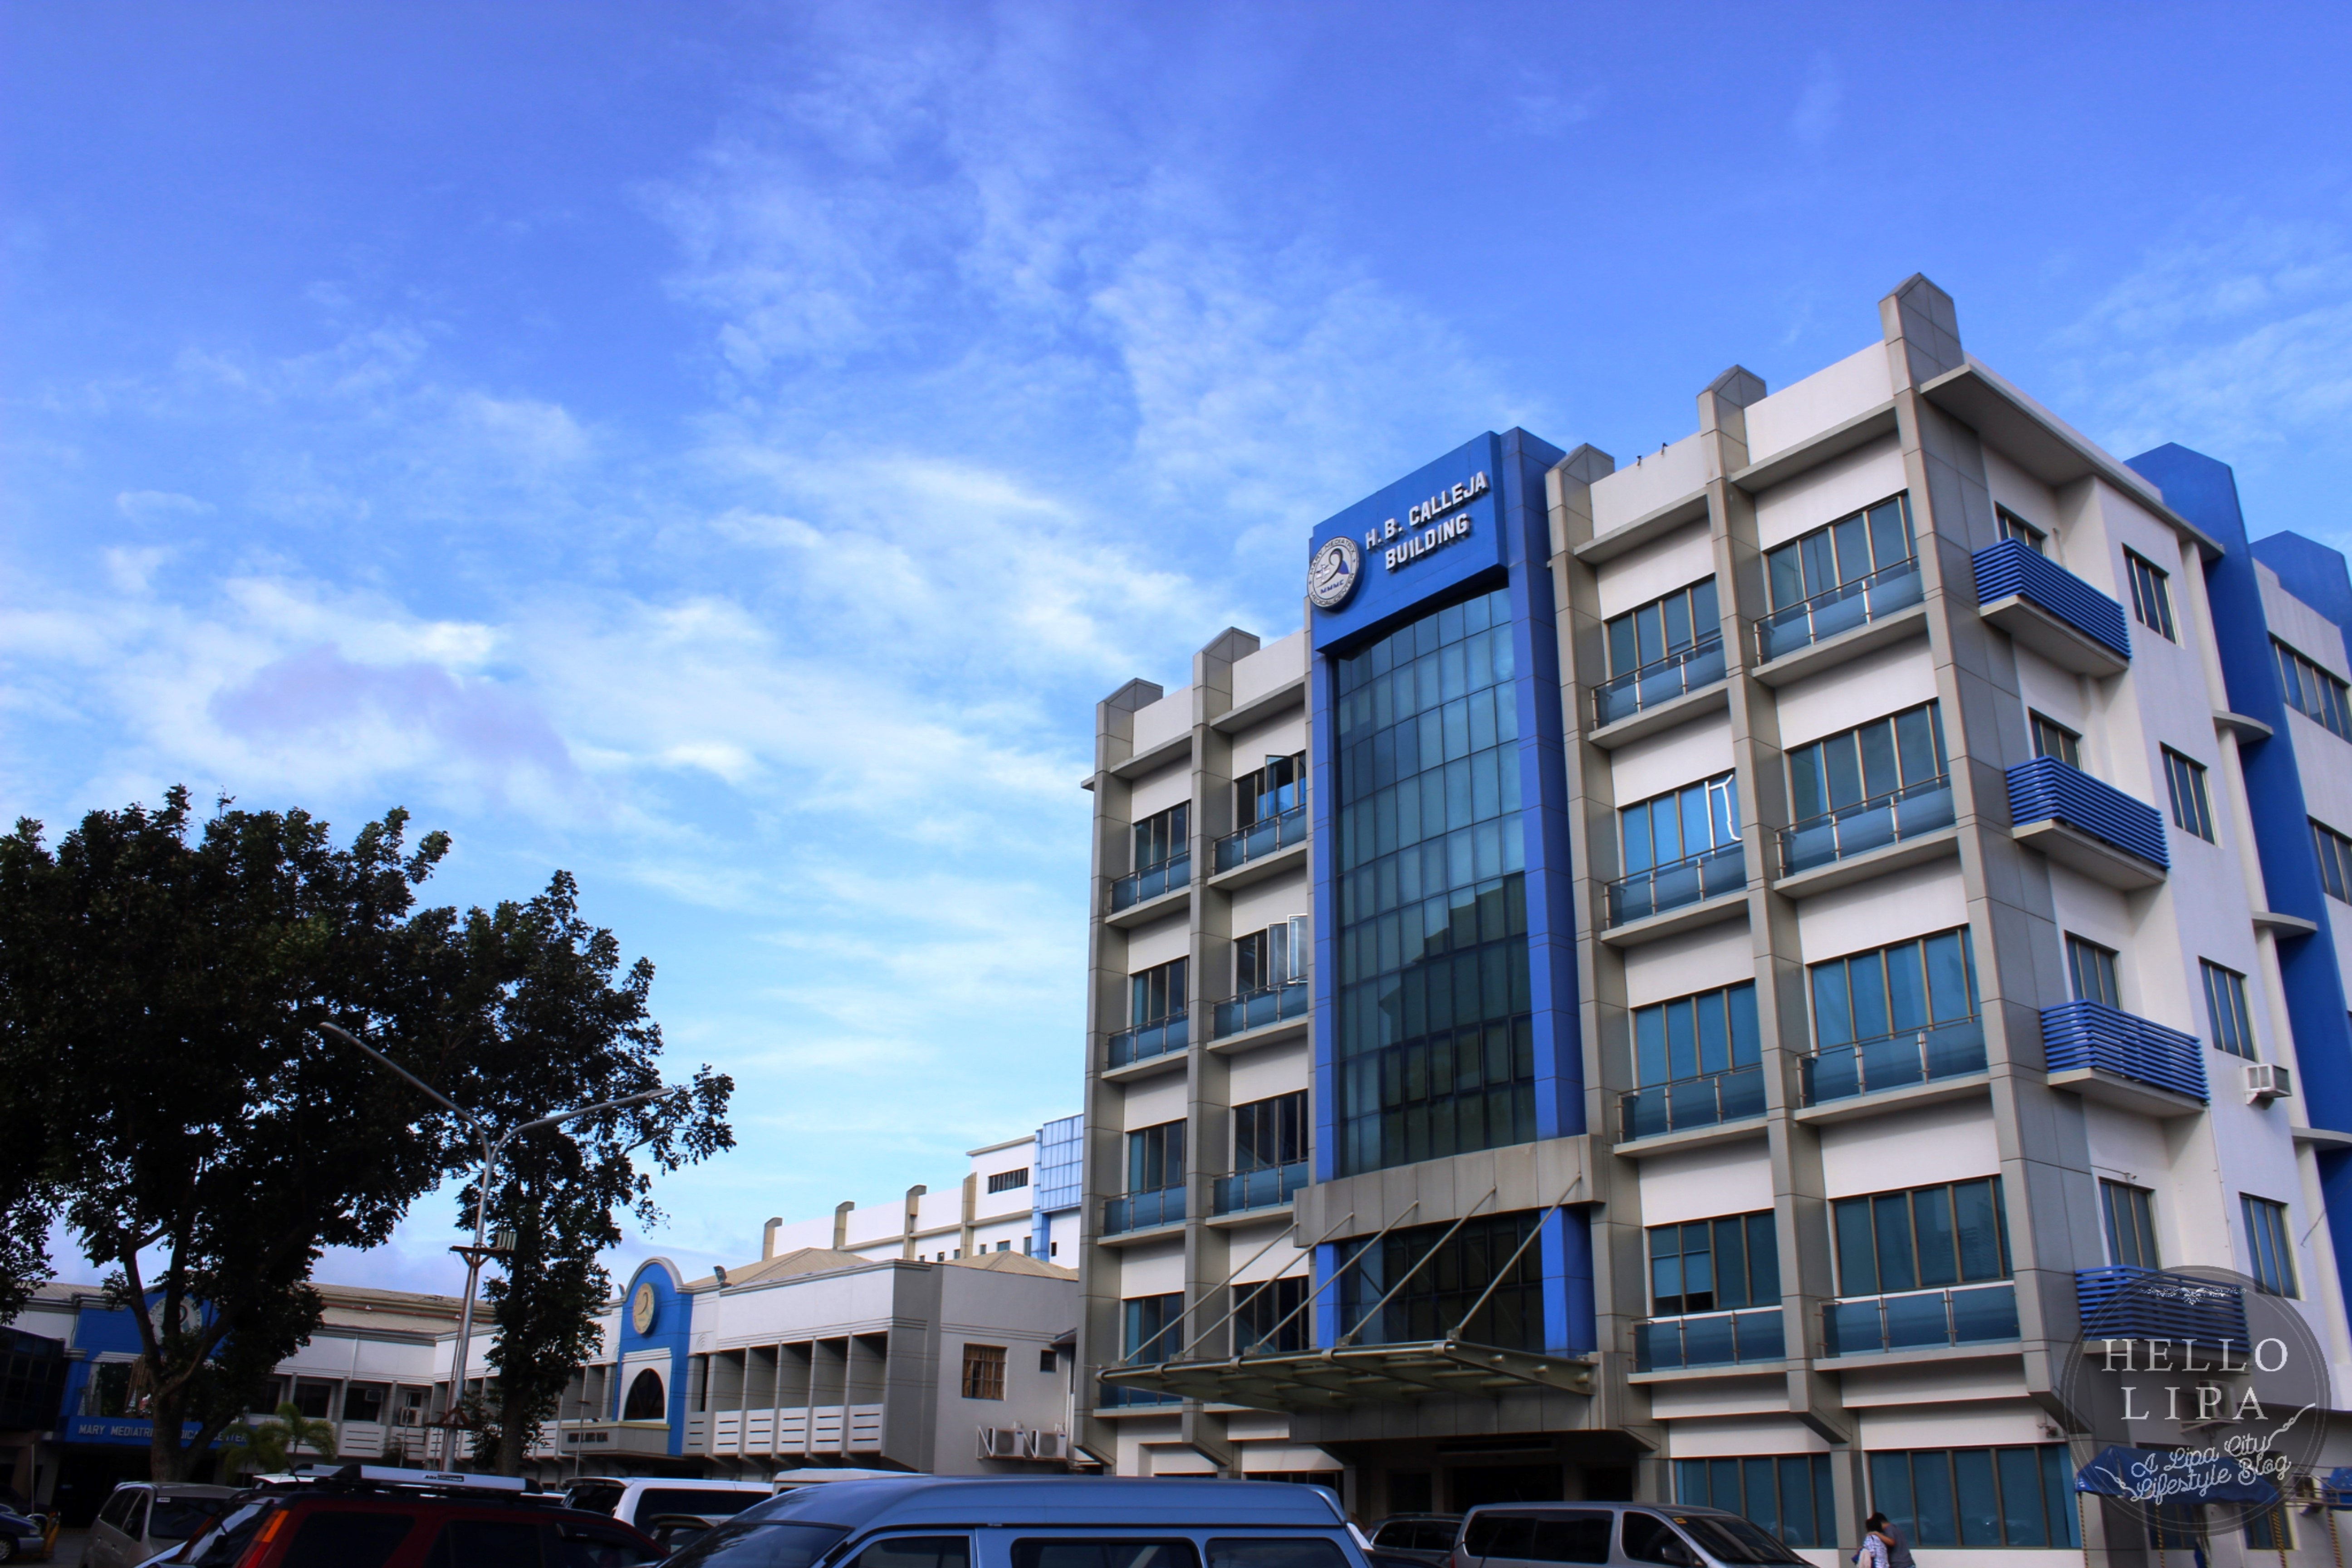 mary mediatrix medical center  the hub of healthcare experts